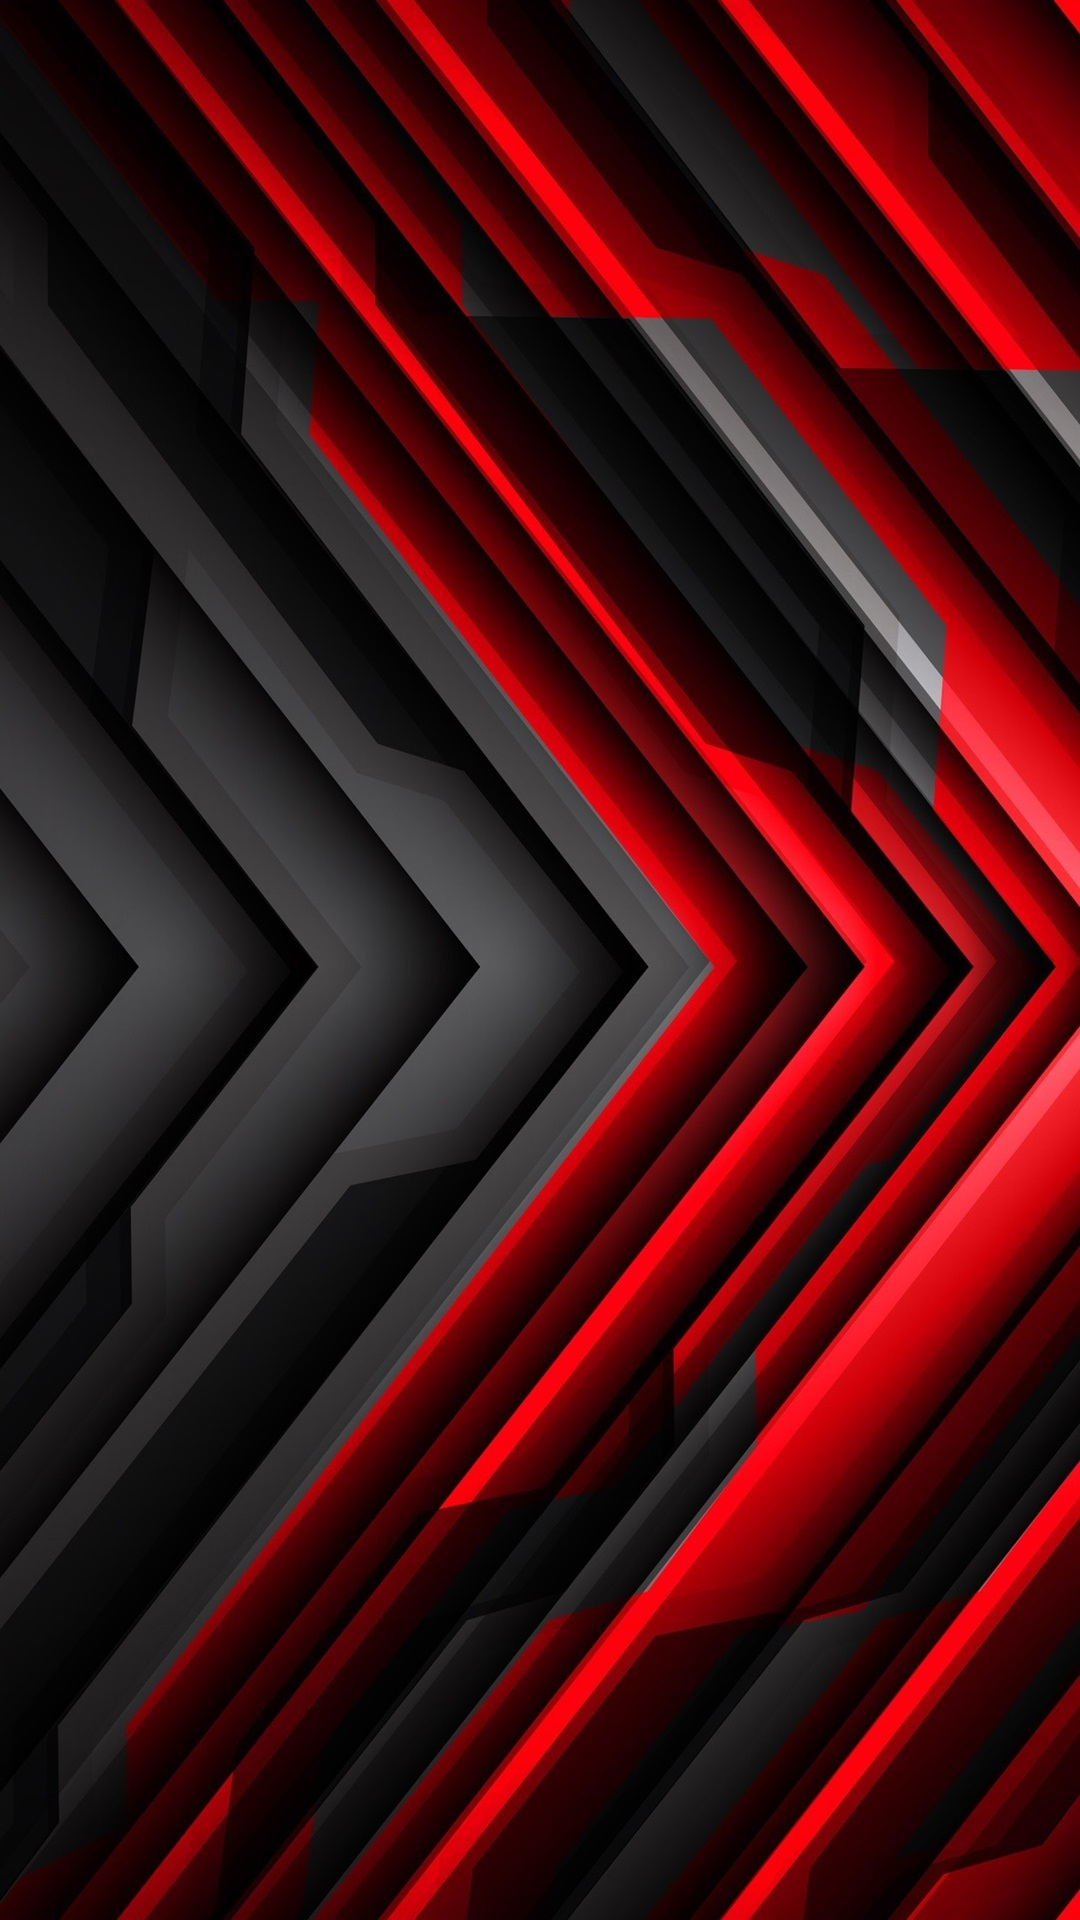 Black And Red >> Black And Red Striped Arrow Abstract 1080x1920 Iphone 8 7 6 6s Plus